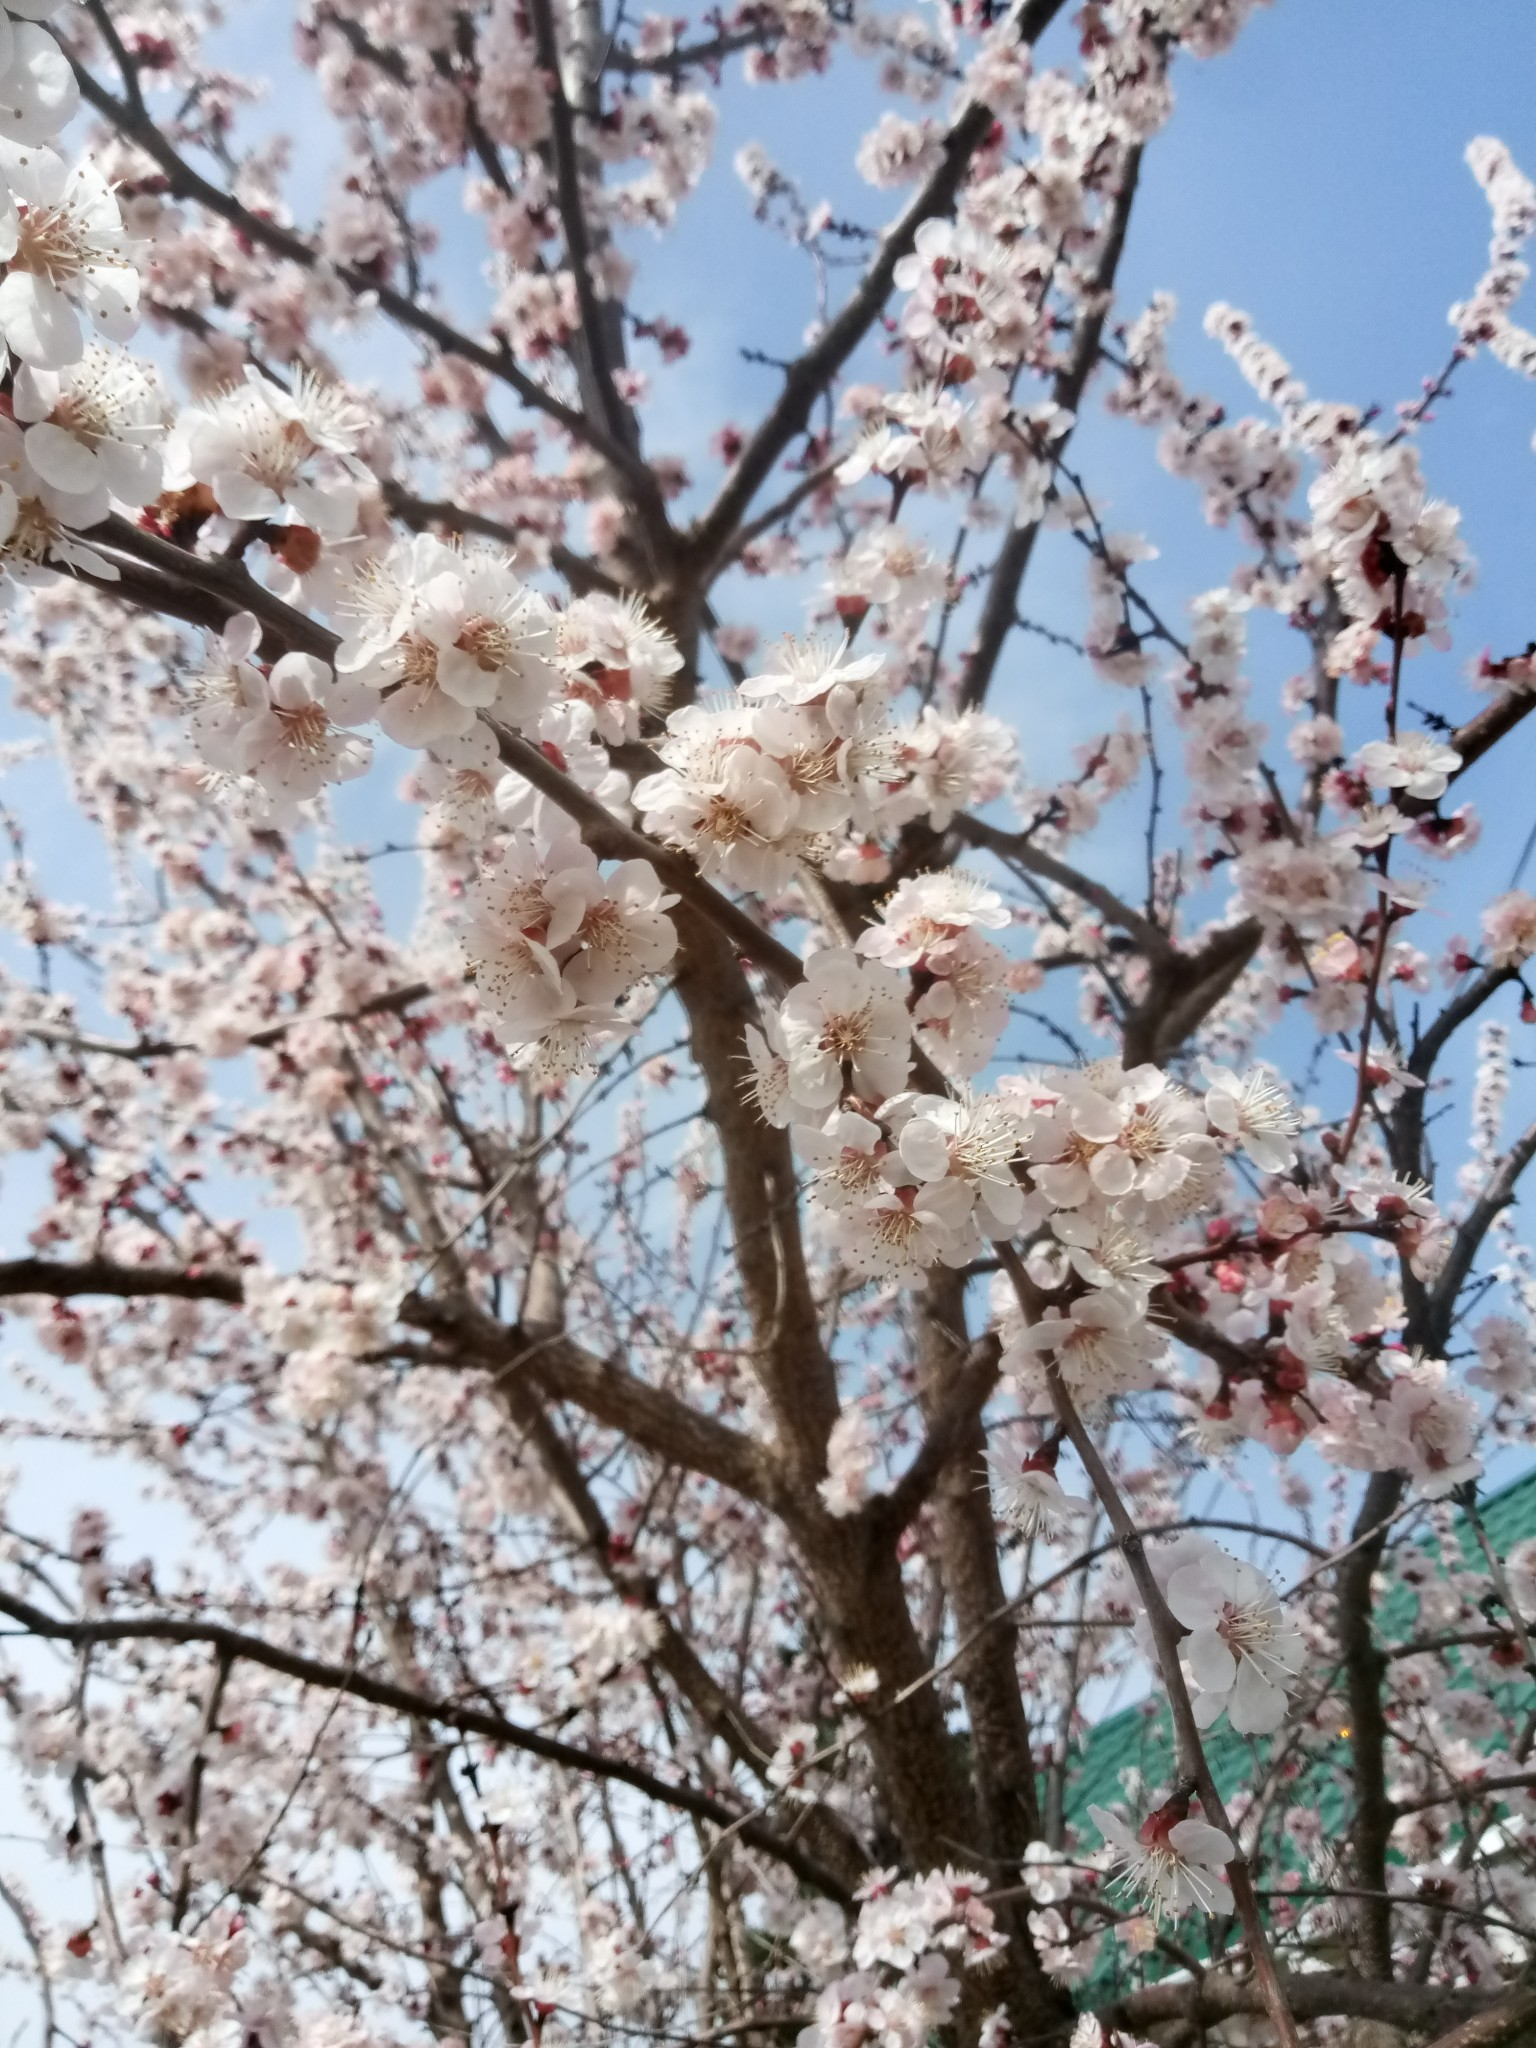 Apricot blossoms pictures